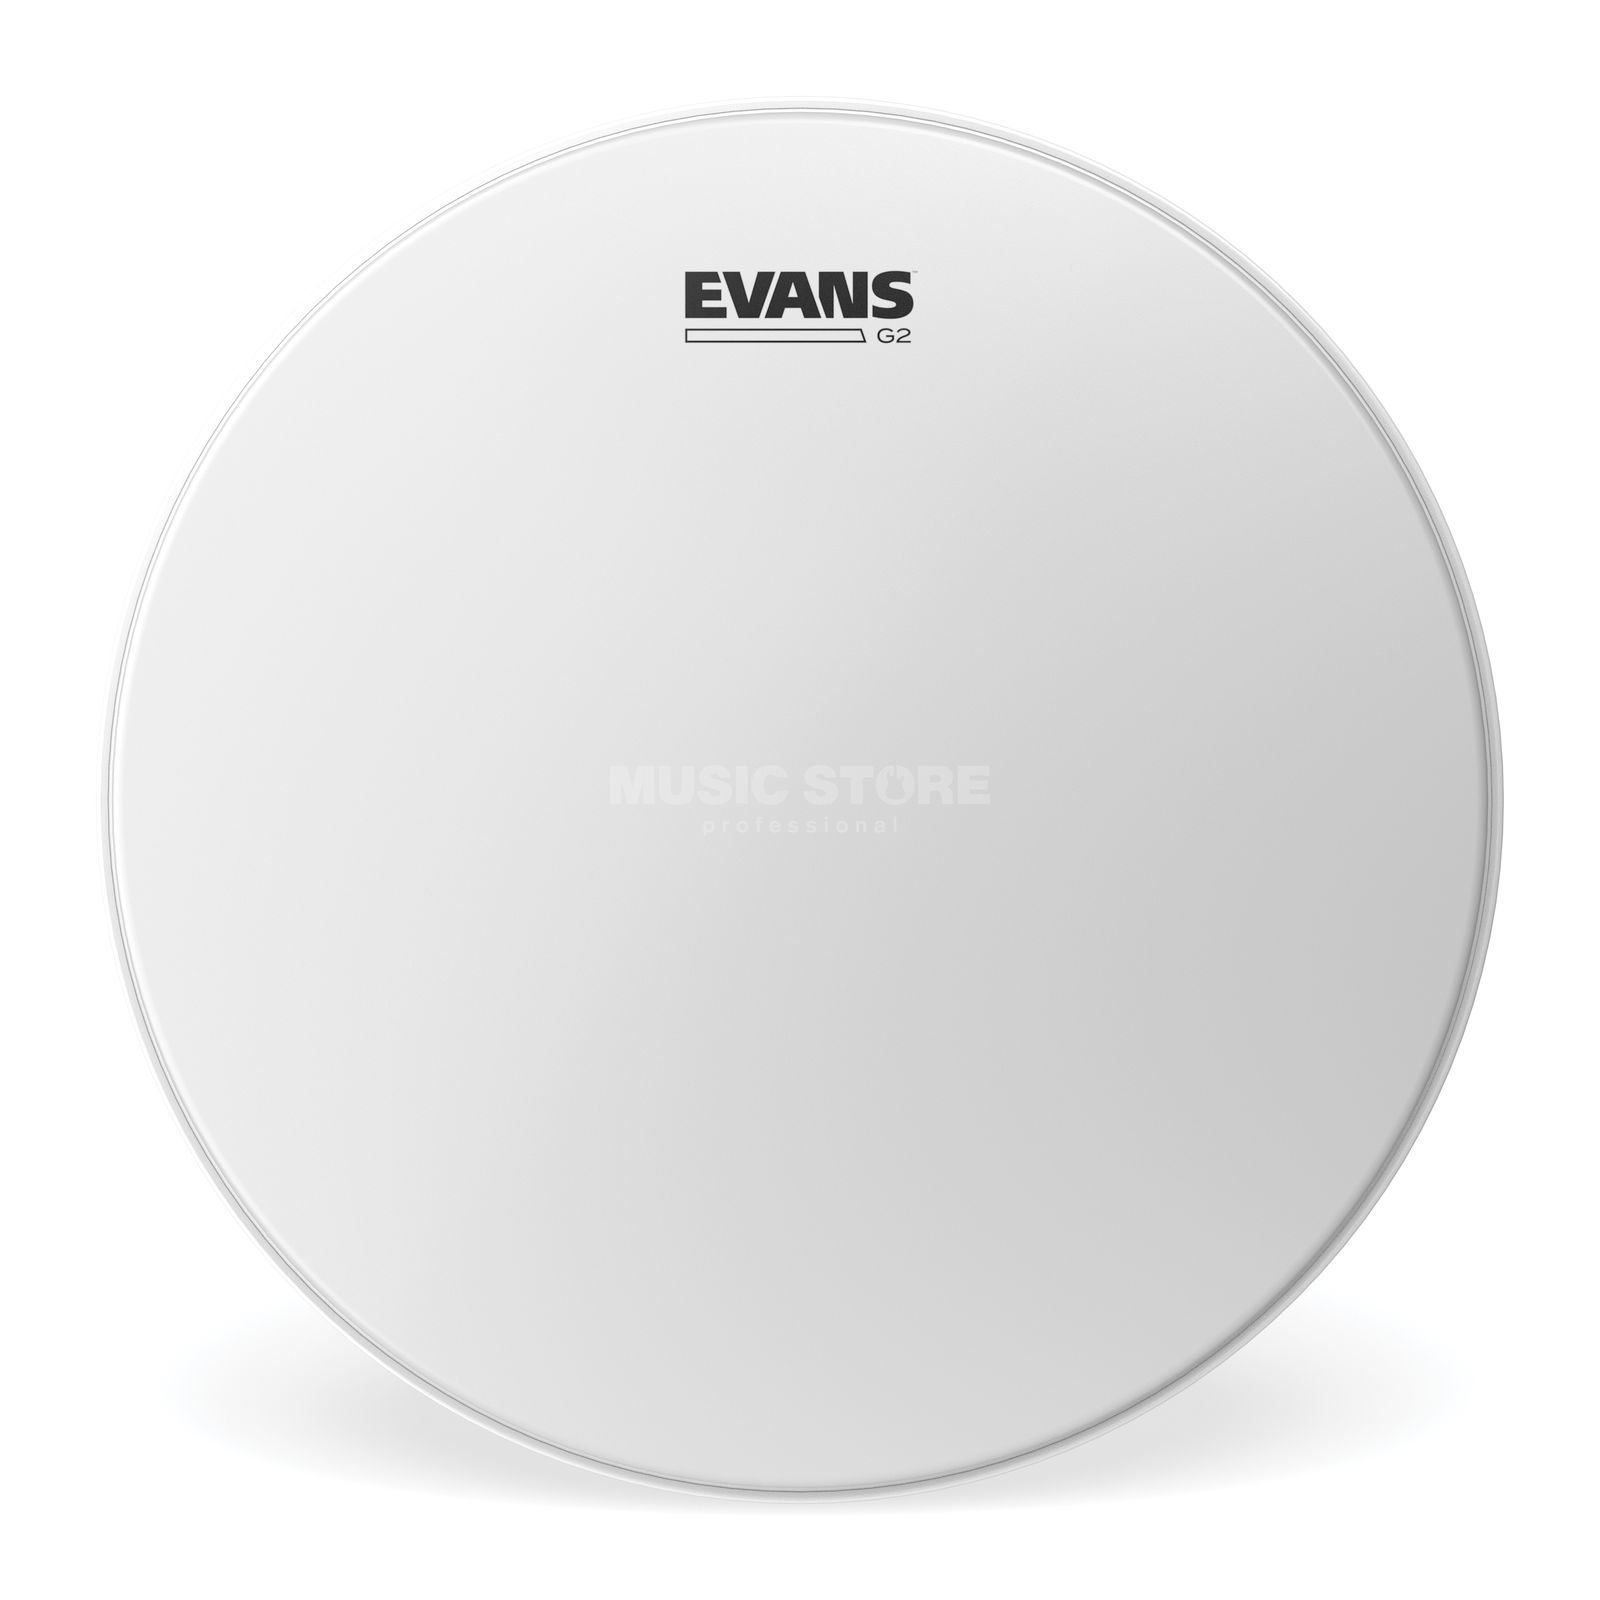 "Evans G2 Coated 14"", B14G2, Tom Batter Produktbild"